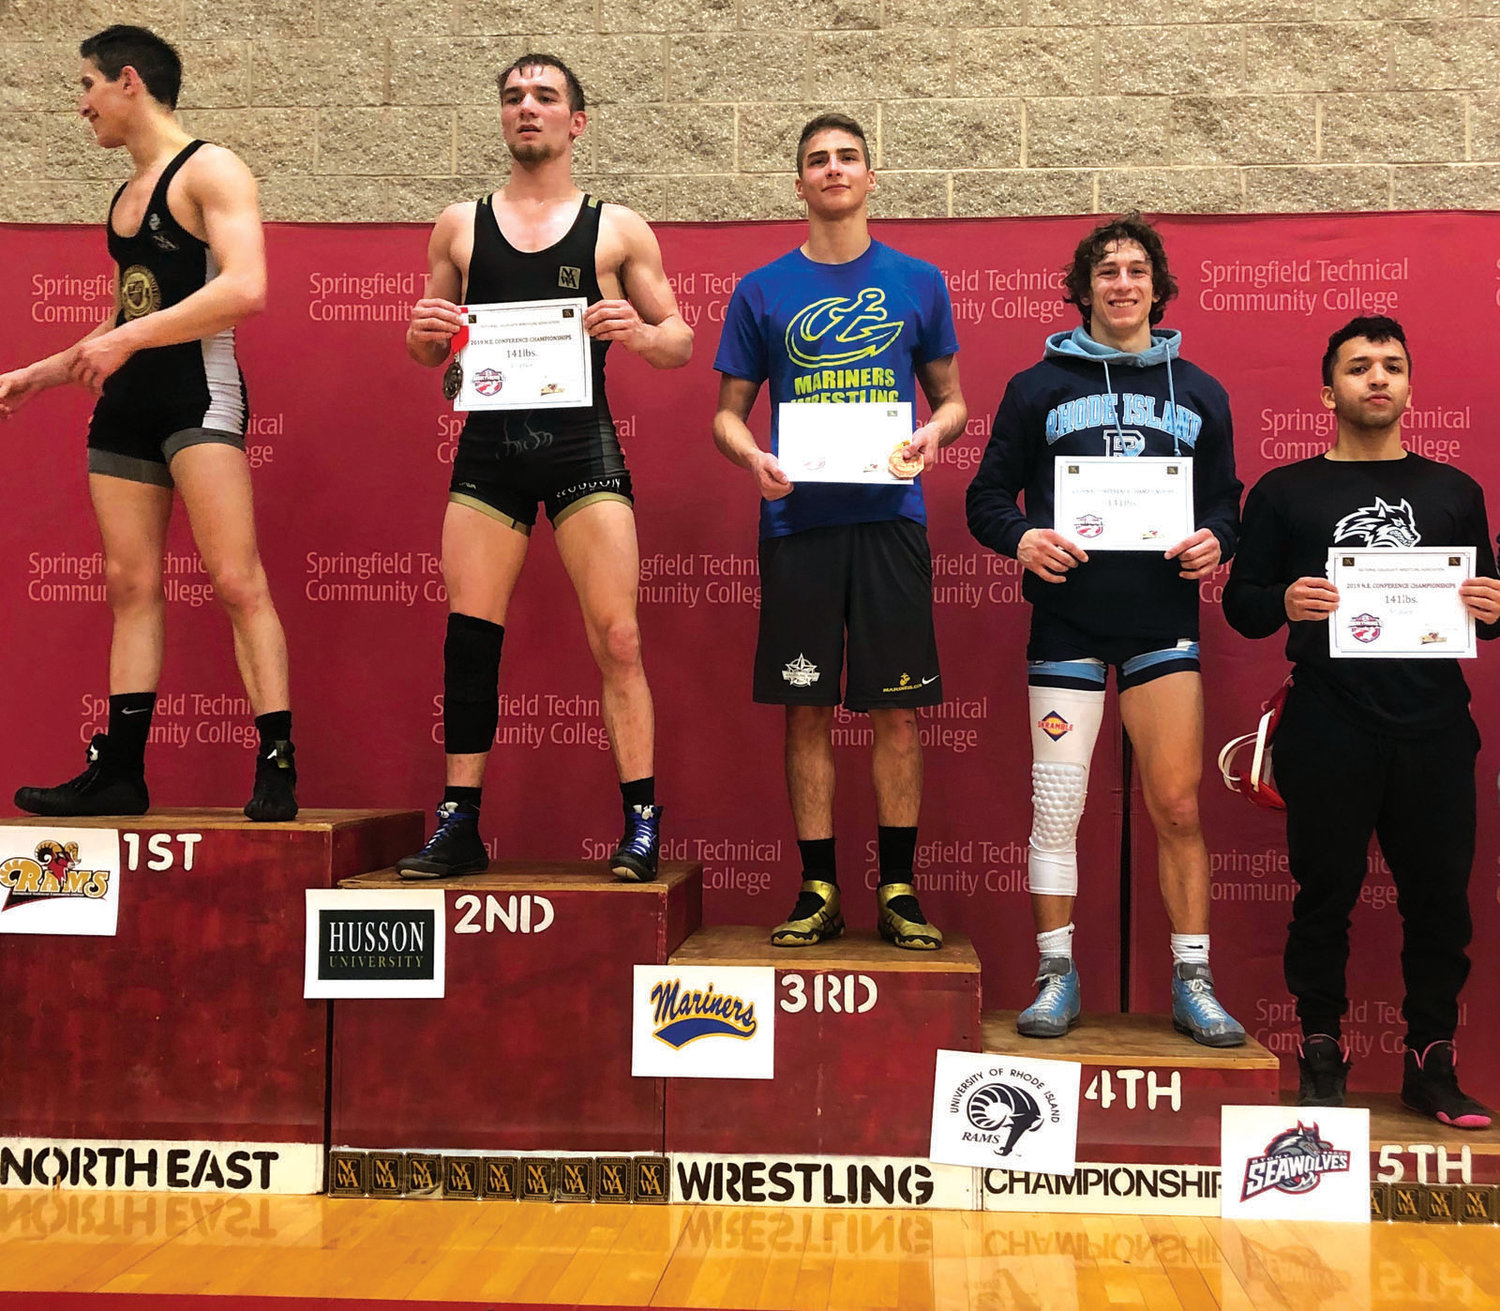 MIGHTY MEDALIST: Johnston's James Baccala (fourth left) stands on the podium showing his award for a fourth place finish in last weekend's regional championships in Springfield, Ma. which earned the former Panther two-sport standout a berth in the March 14-16 NCWA championships in Allen, Texas.